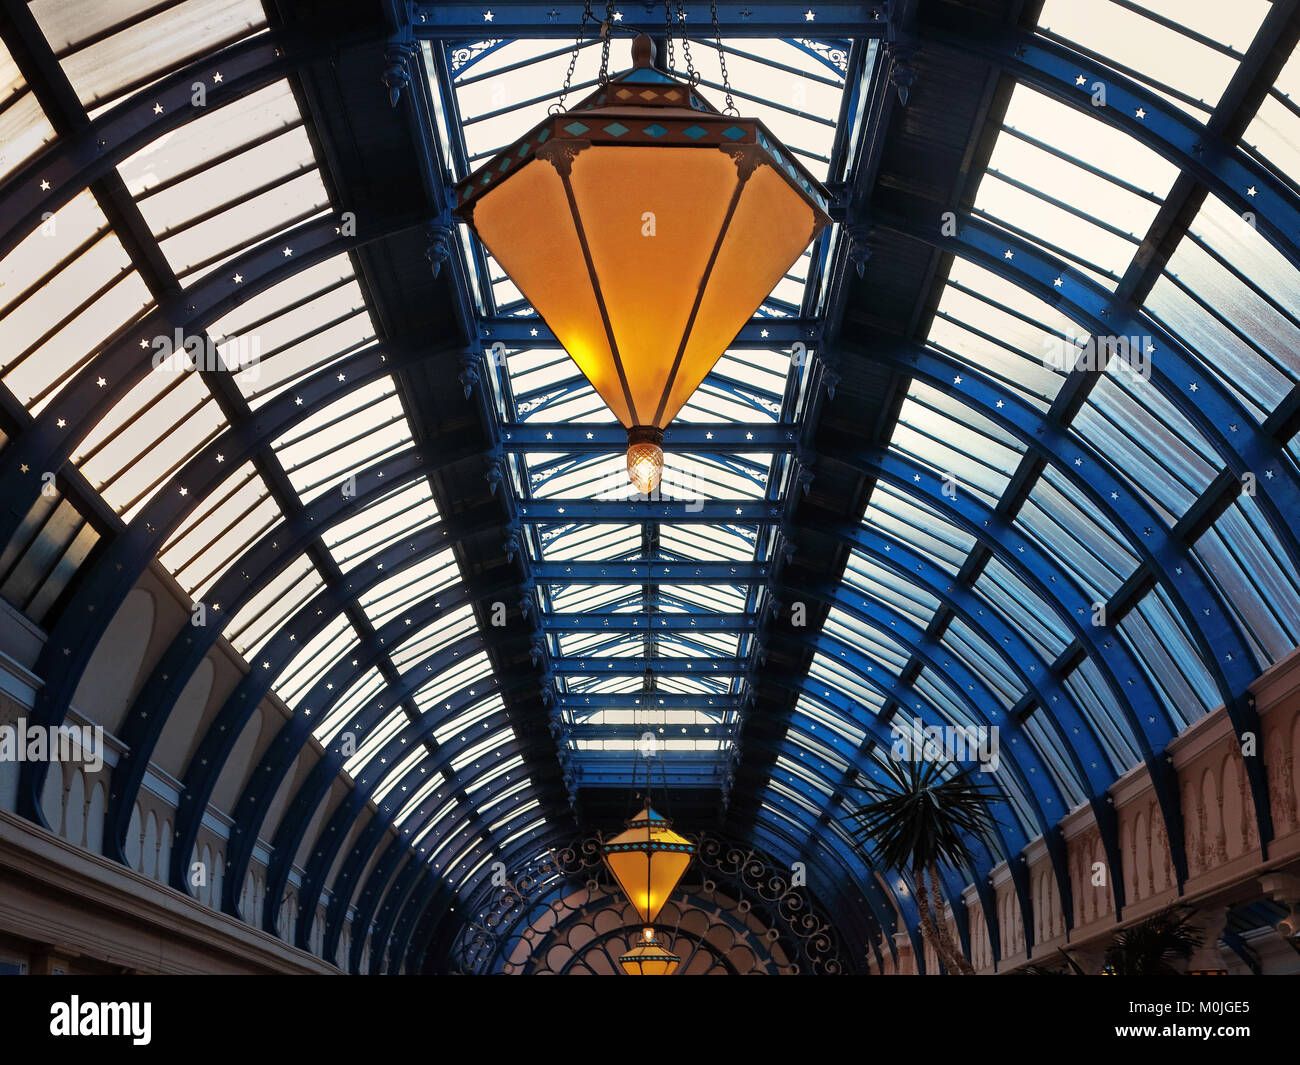 Under the glass roof of the Winter Gardens, Blackpool - Stock Image